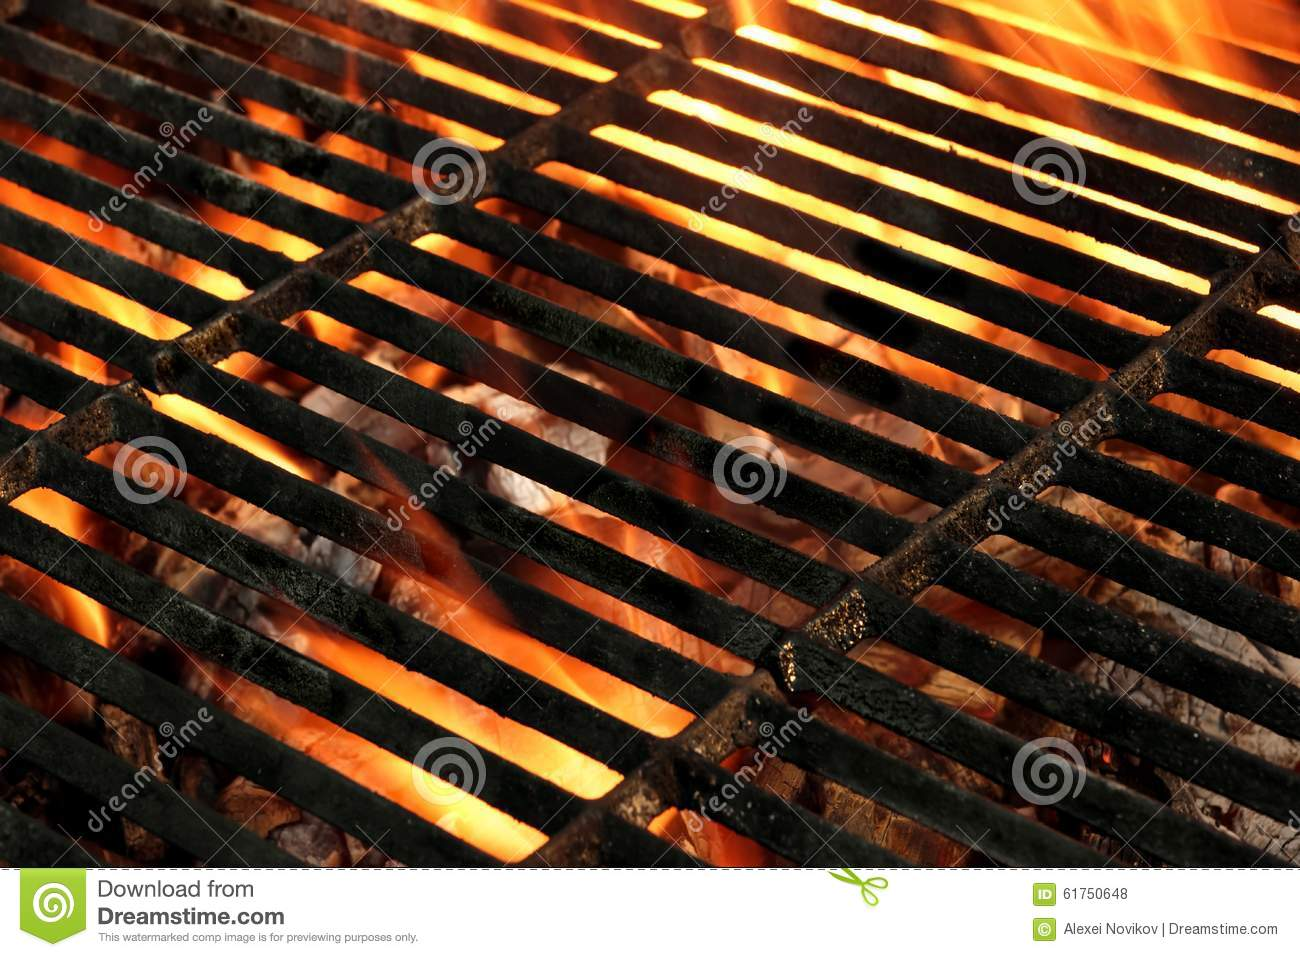 hot empty charcoal bbq royalty free stock image cookout clip art images cookout clip art barbeque